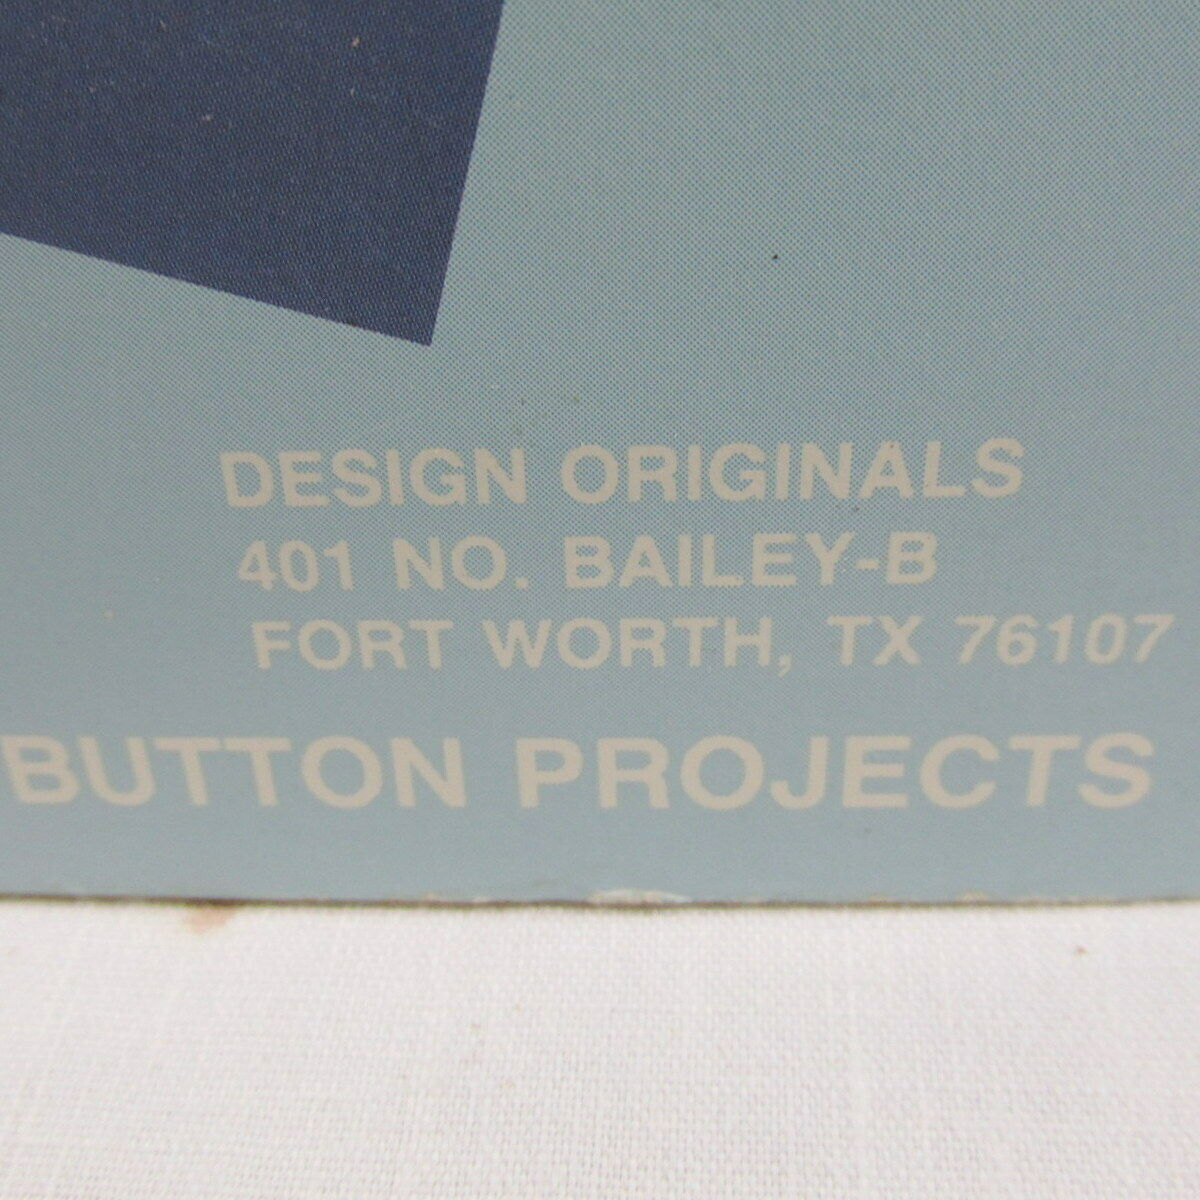 Who's Got the Button 36 Projects New Suzanne McNeill 1988 Original Designs 2034 image 5